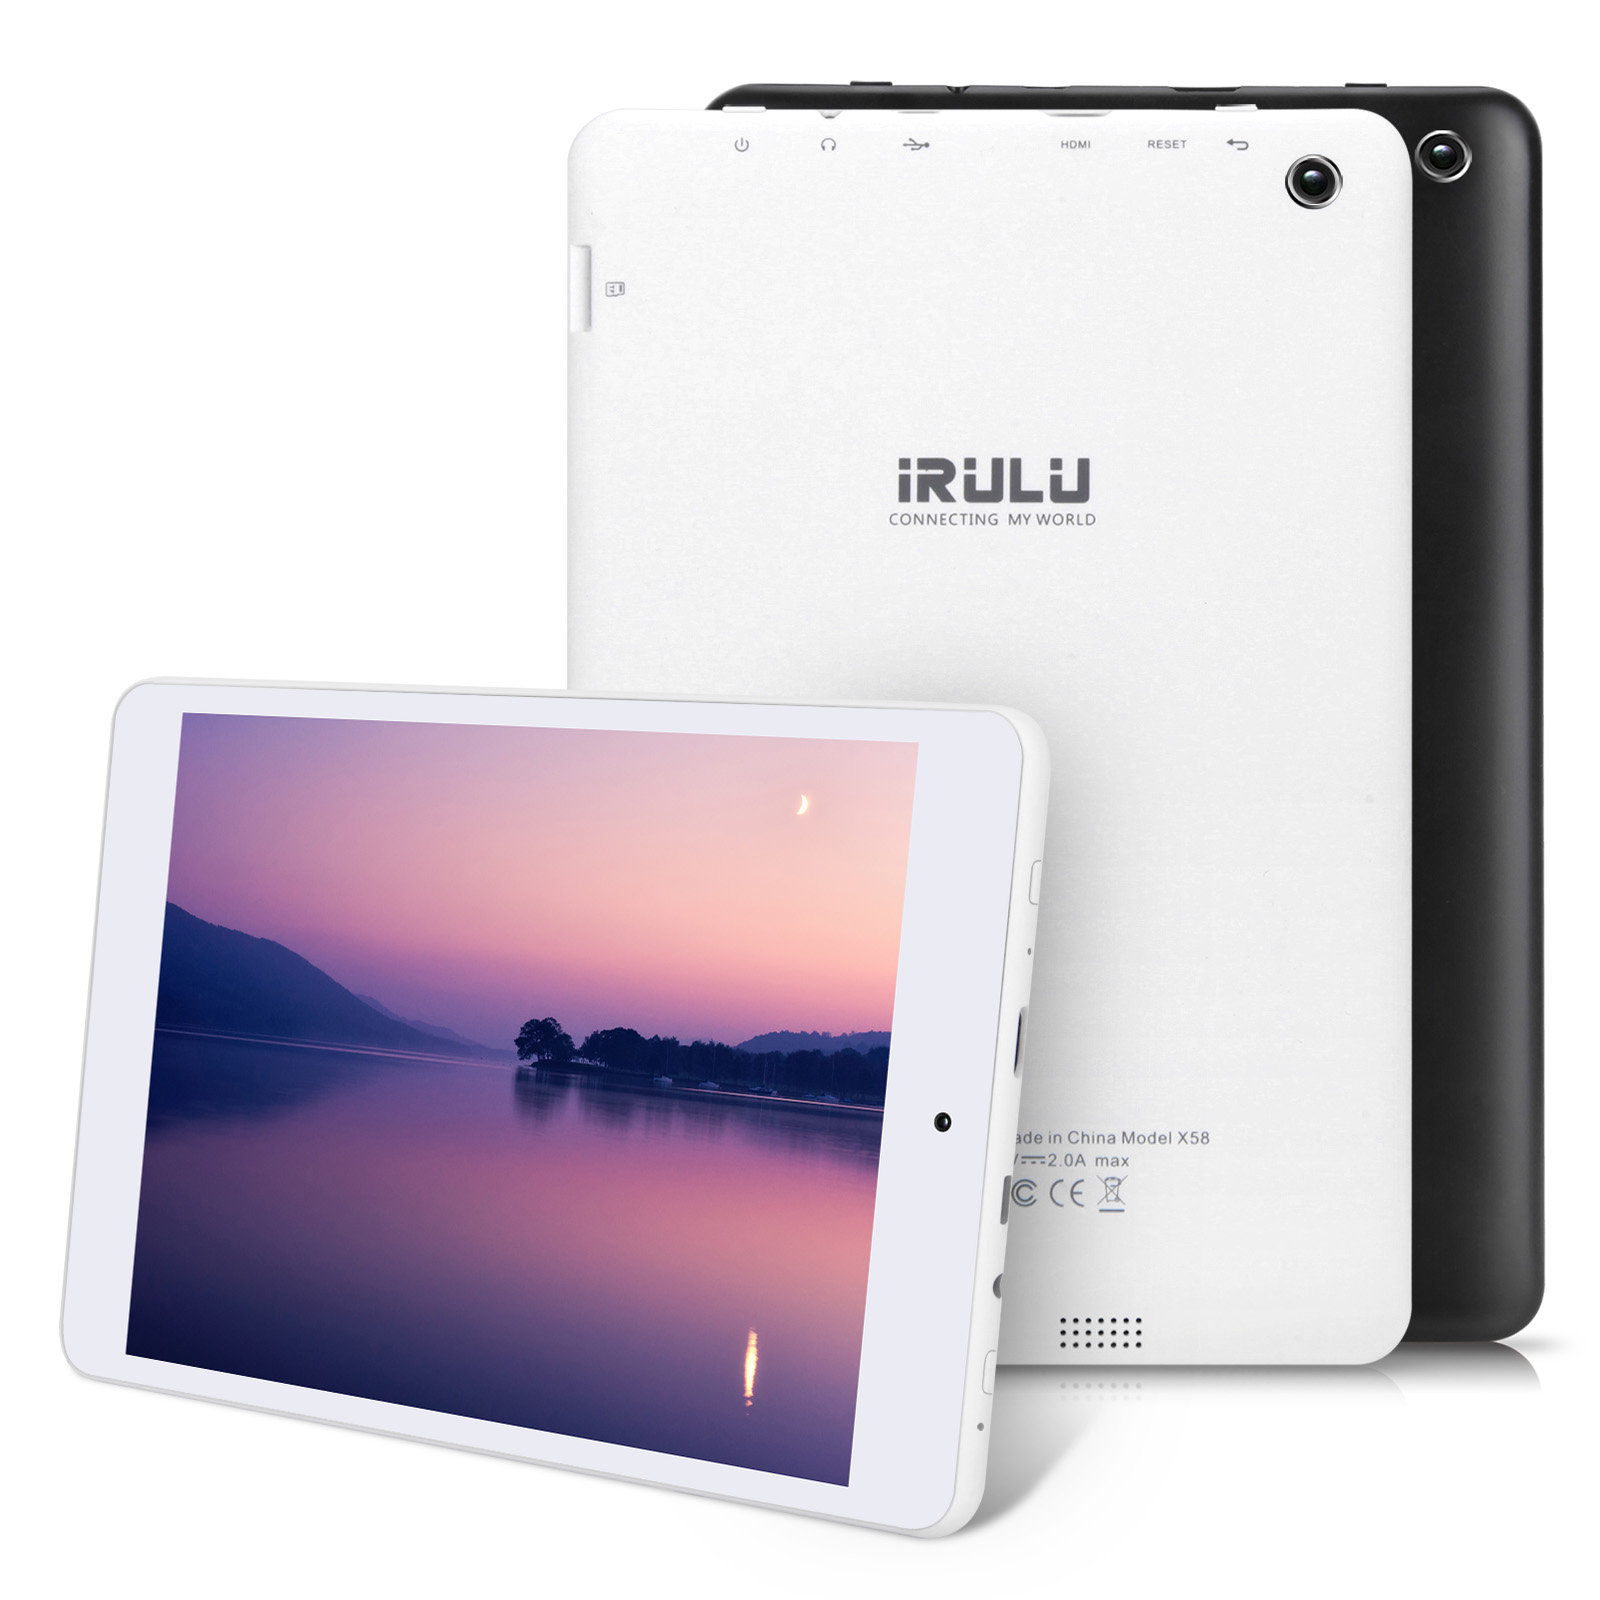 Fifth generation of iRULU eXpro tablet is